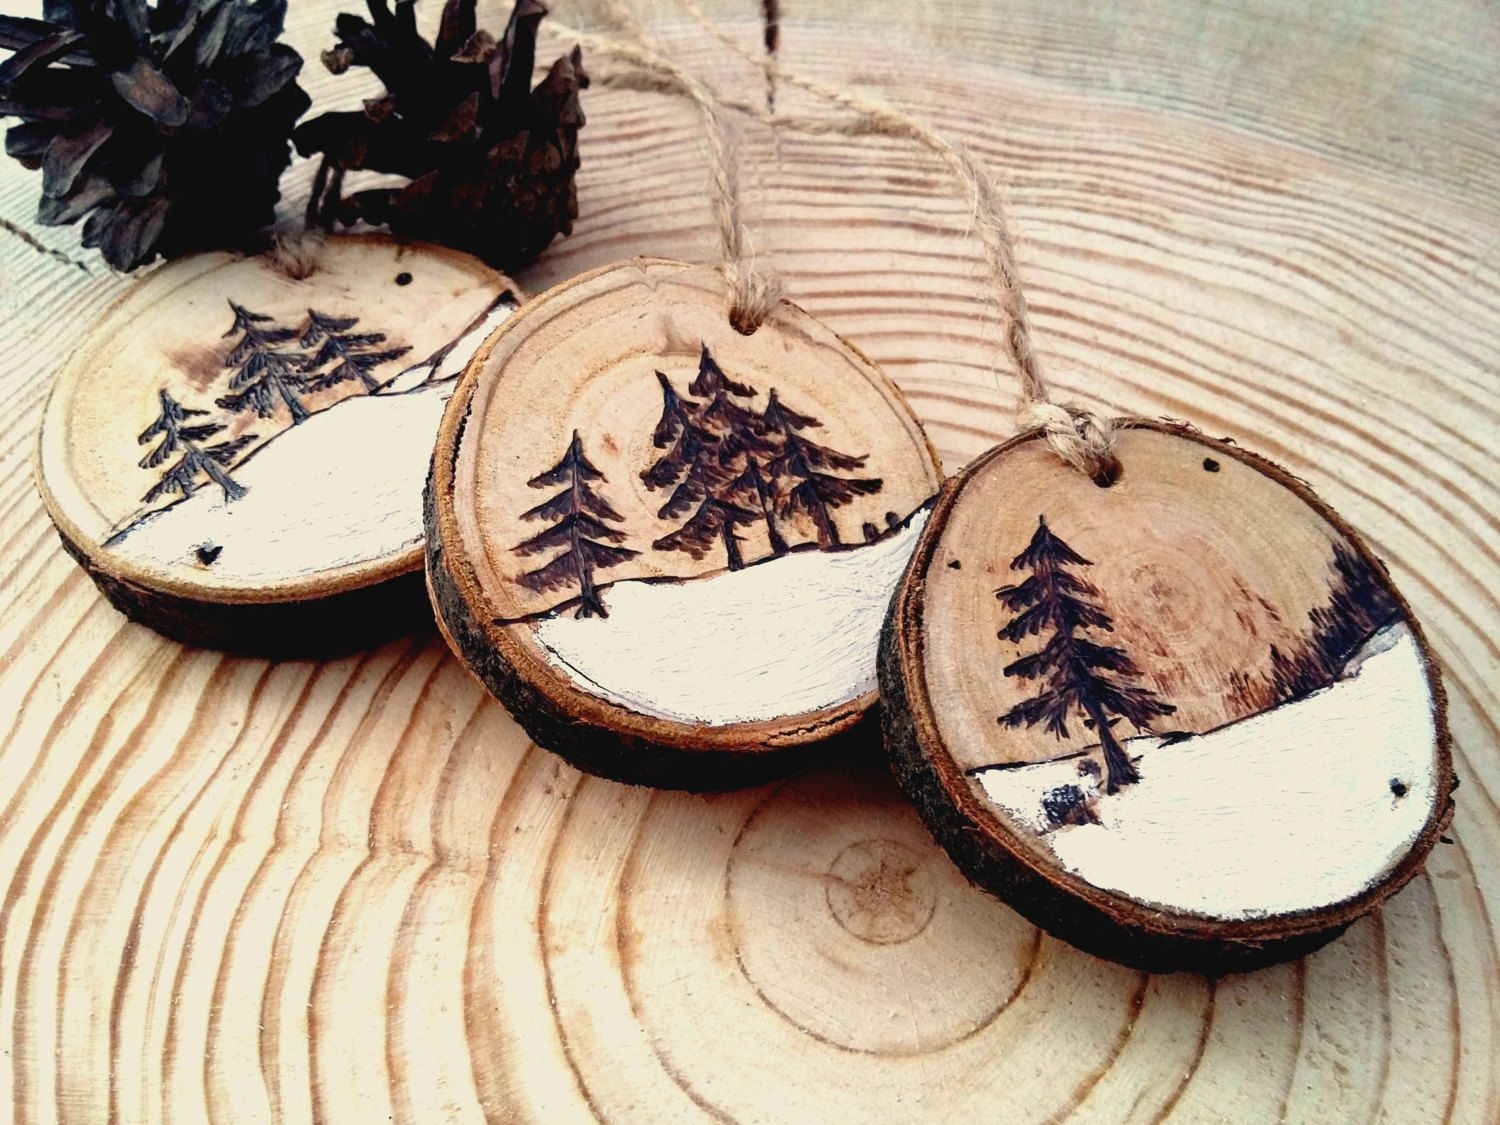 Christmas Tree Decor Christmas Toys Rustic Christmas Decor Etsy Wooden Christmas Decorations Wooden Christmas Ornaments Christmas Decorations Rustic